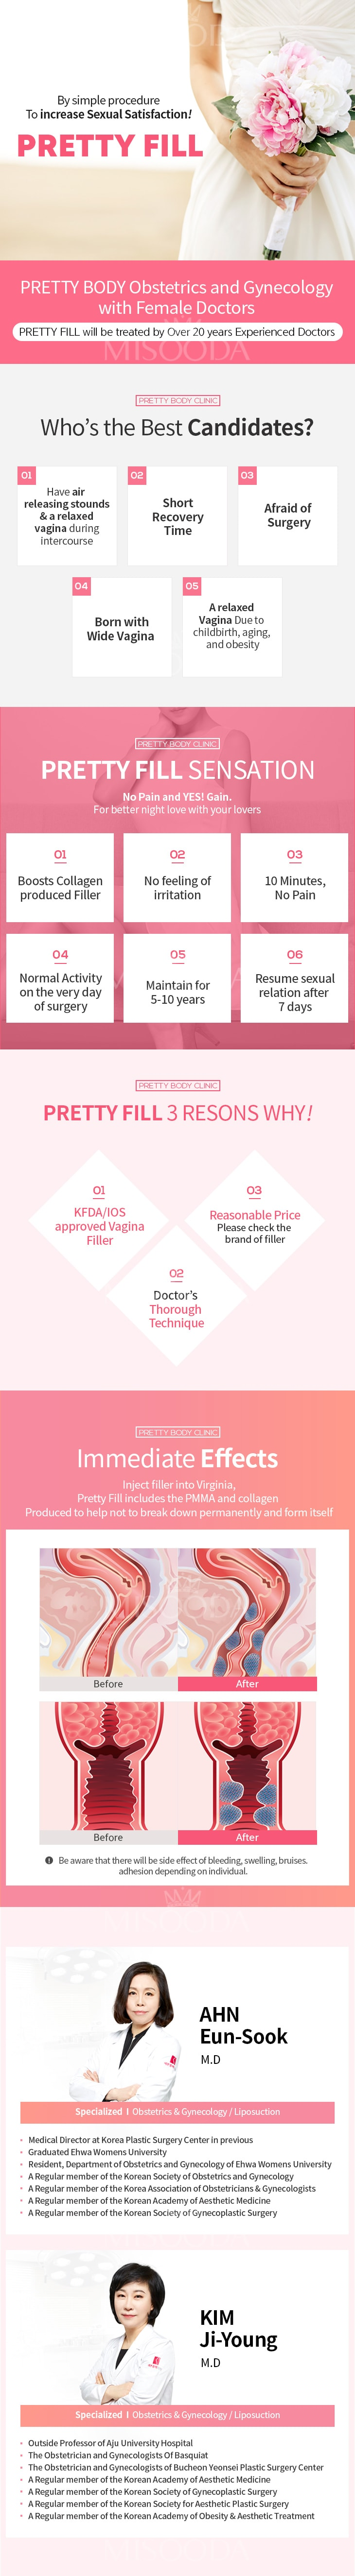 PRETTY BODY CLINIC : Pretty Fill (Vagina Filler)